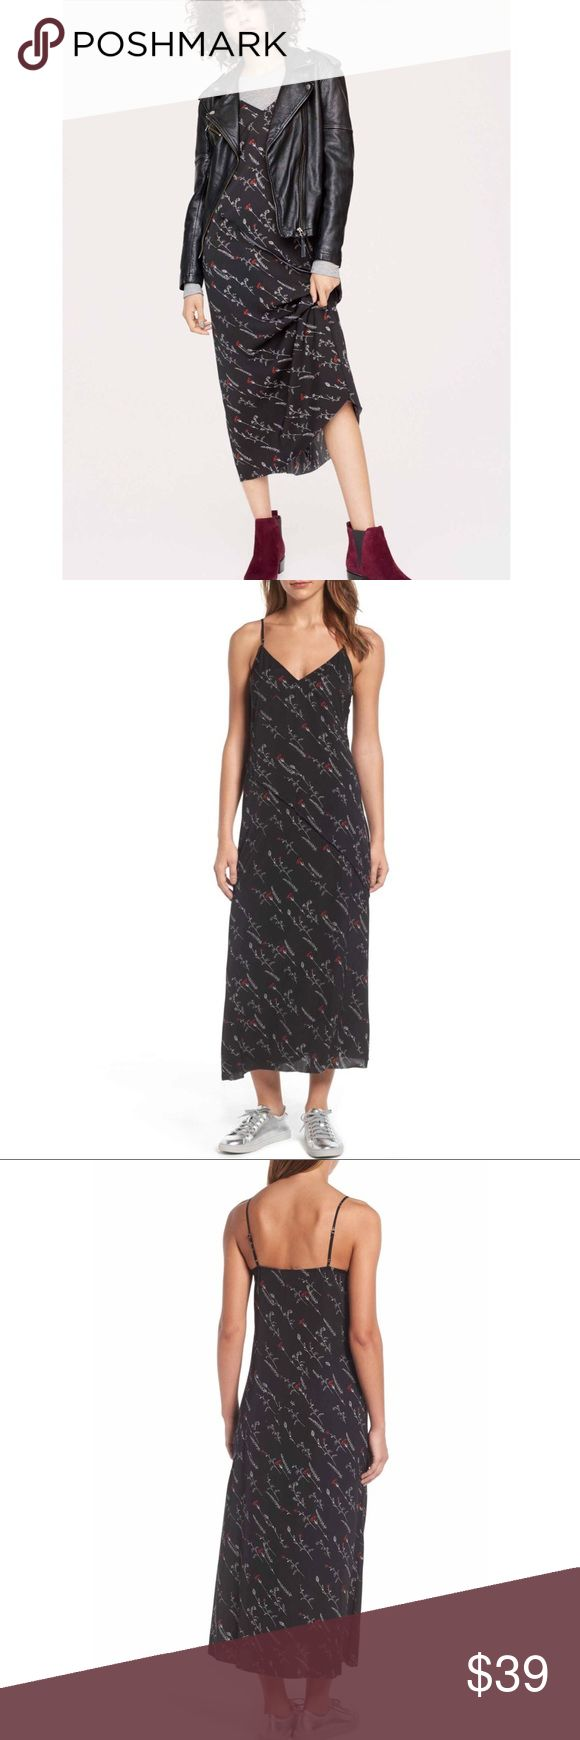 "NWT Treasure & Bond Black Floral Slip-dress Size S Brand new with tag.    100% polyester   Size: S  🌹Pit to pit: 17""  🌹Length: 48""  🌹condition: NWT ( brand new with tag)   💋open to offers 💋bundle for discount  B31 Treasure & Bond Dresses Backless"